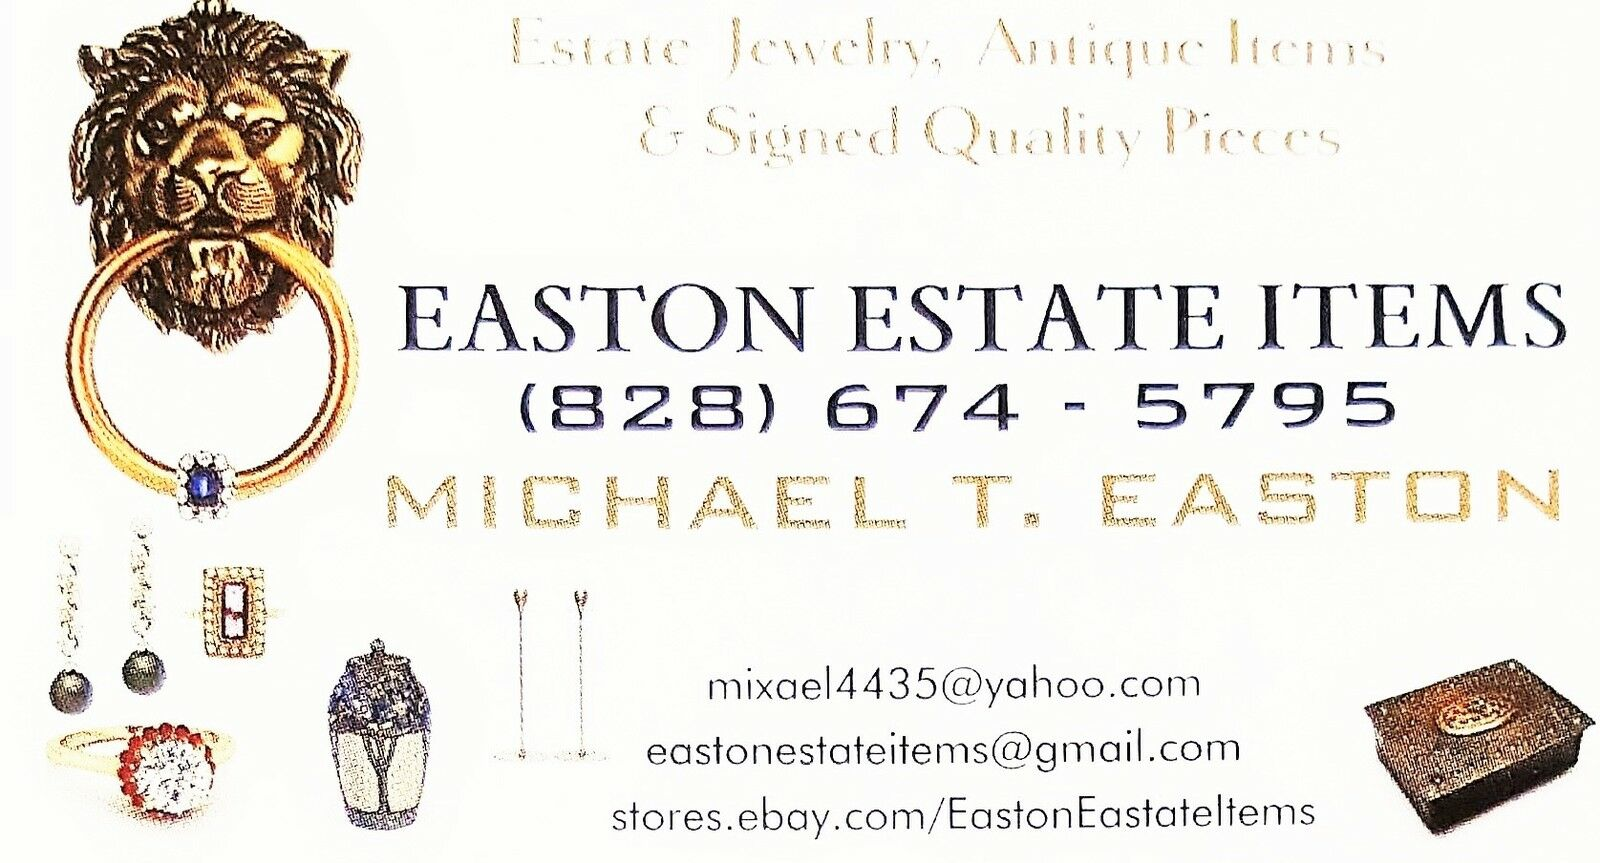 EASTON ESTATE ITEMS